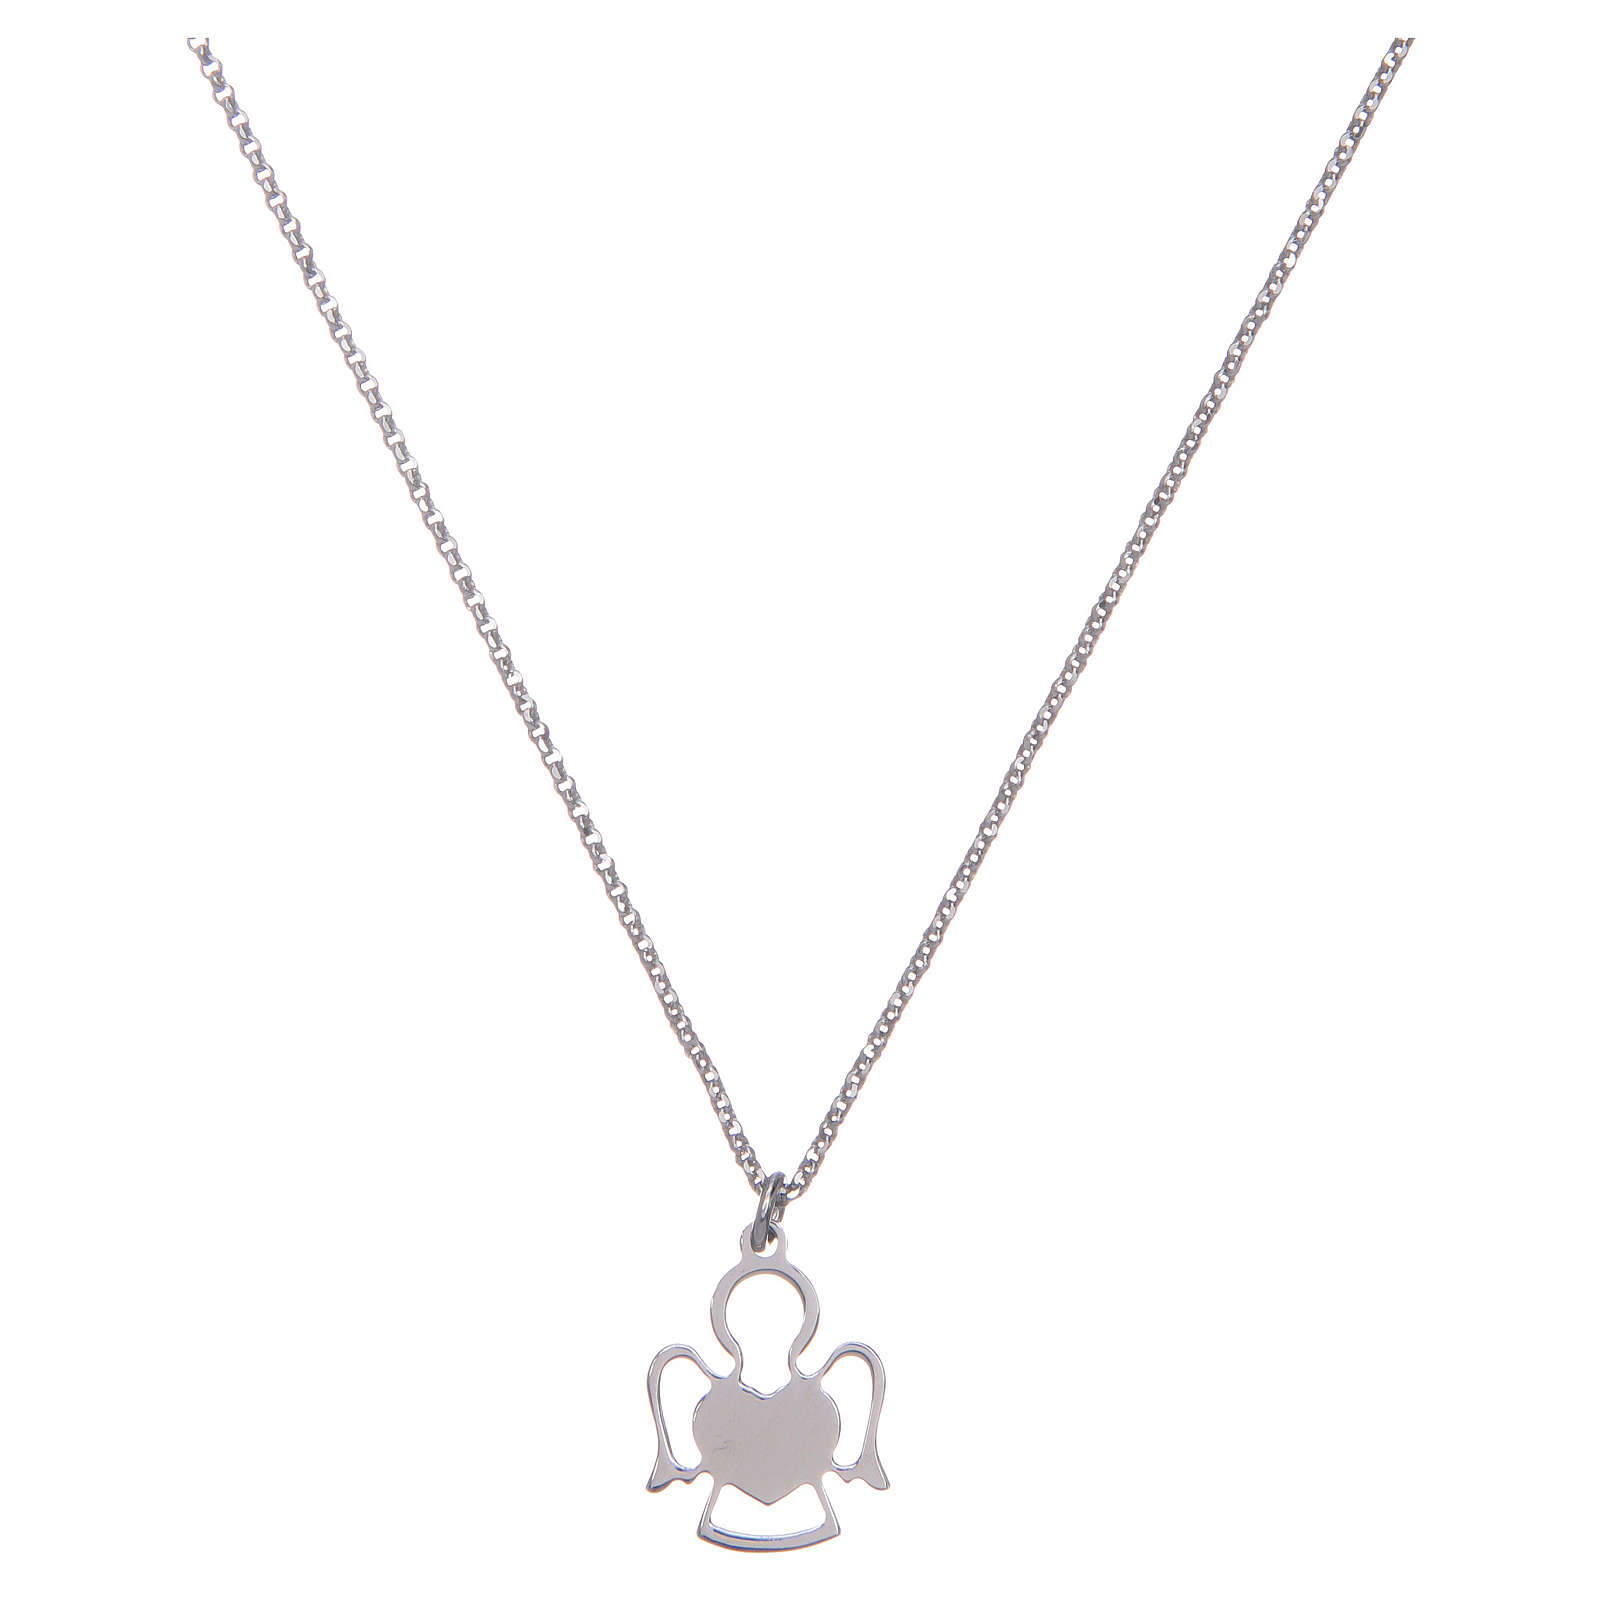 Amen silver necklace with Angel pendant 4